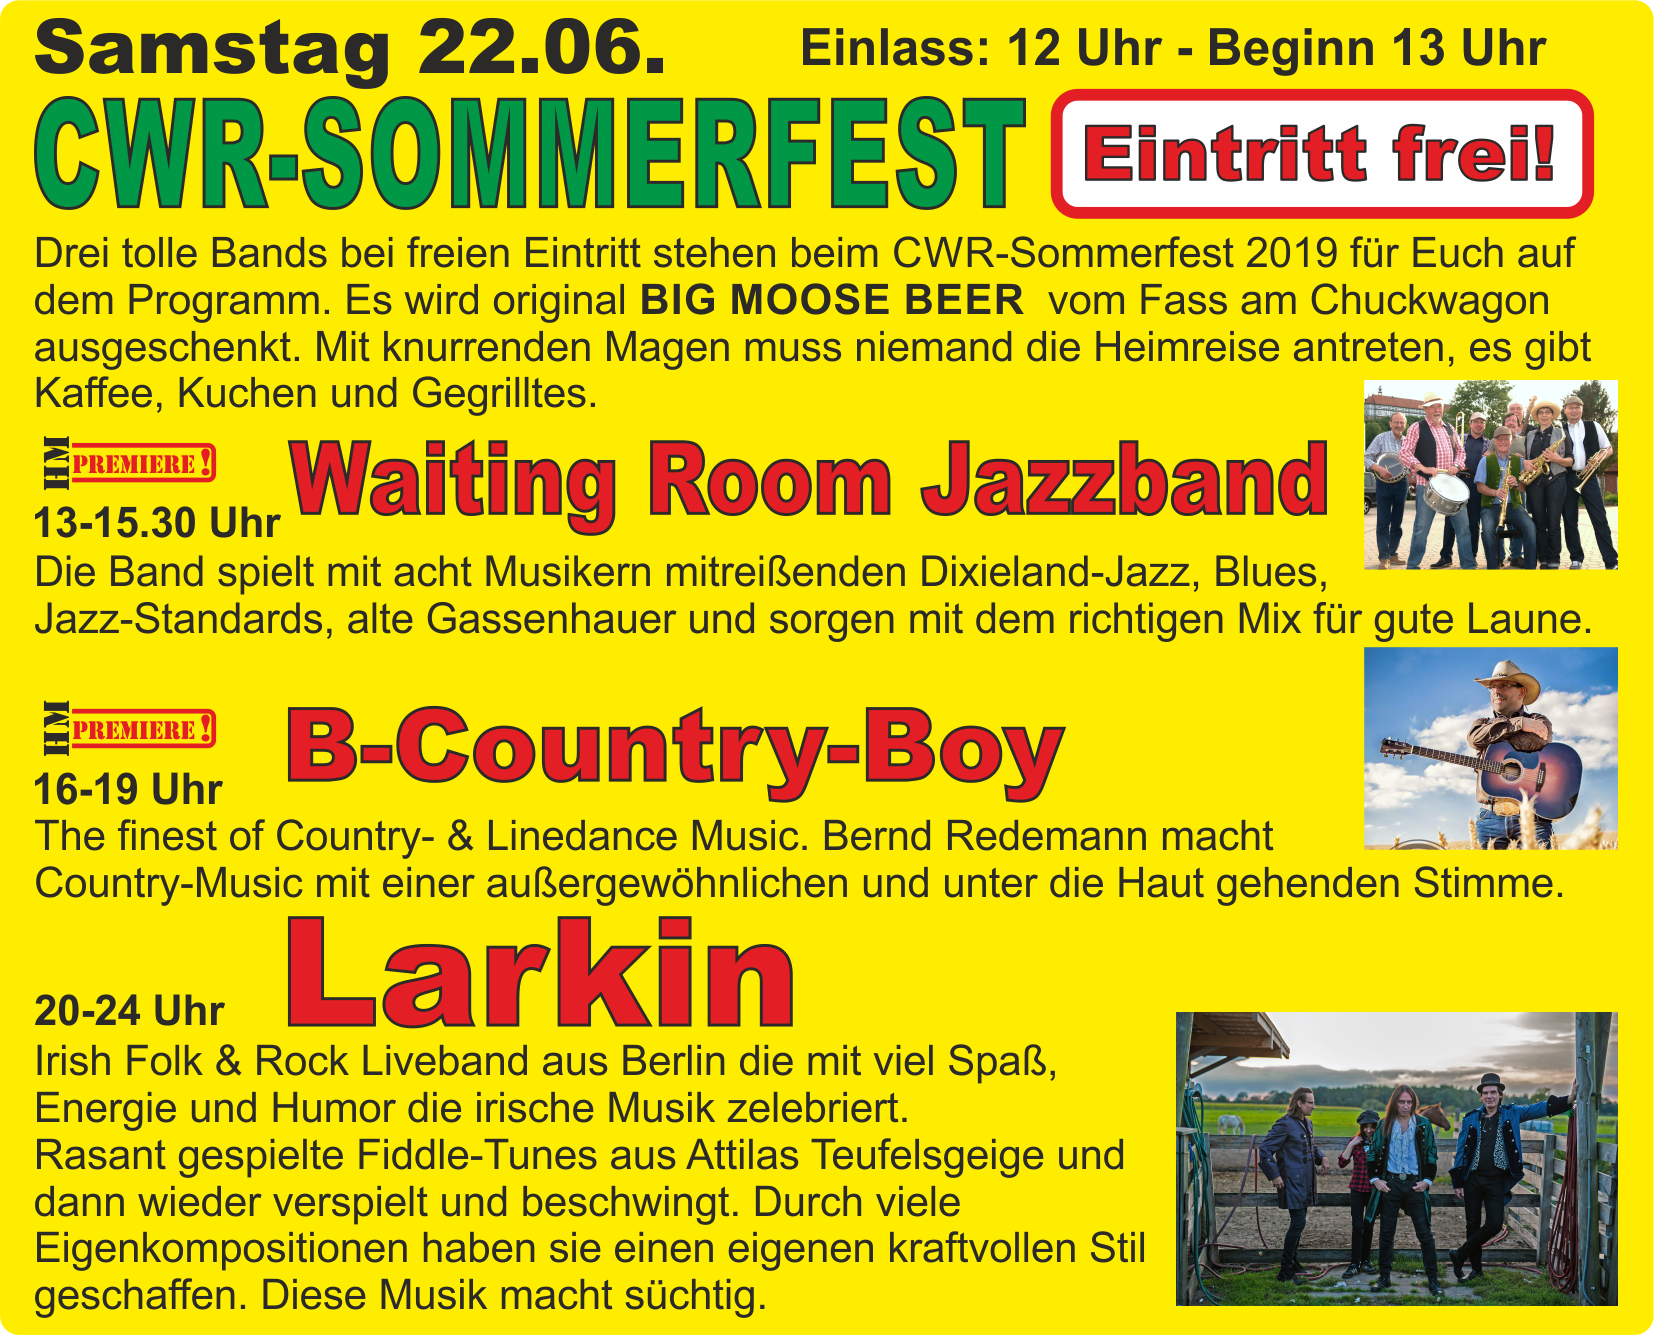 cwrsommerfest homepage 22 06 2019